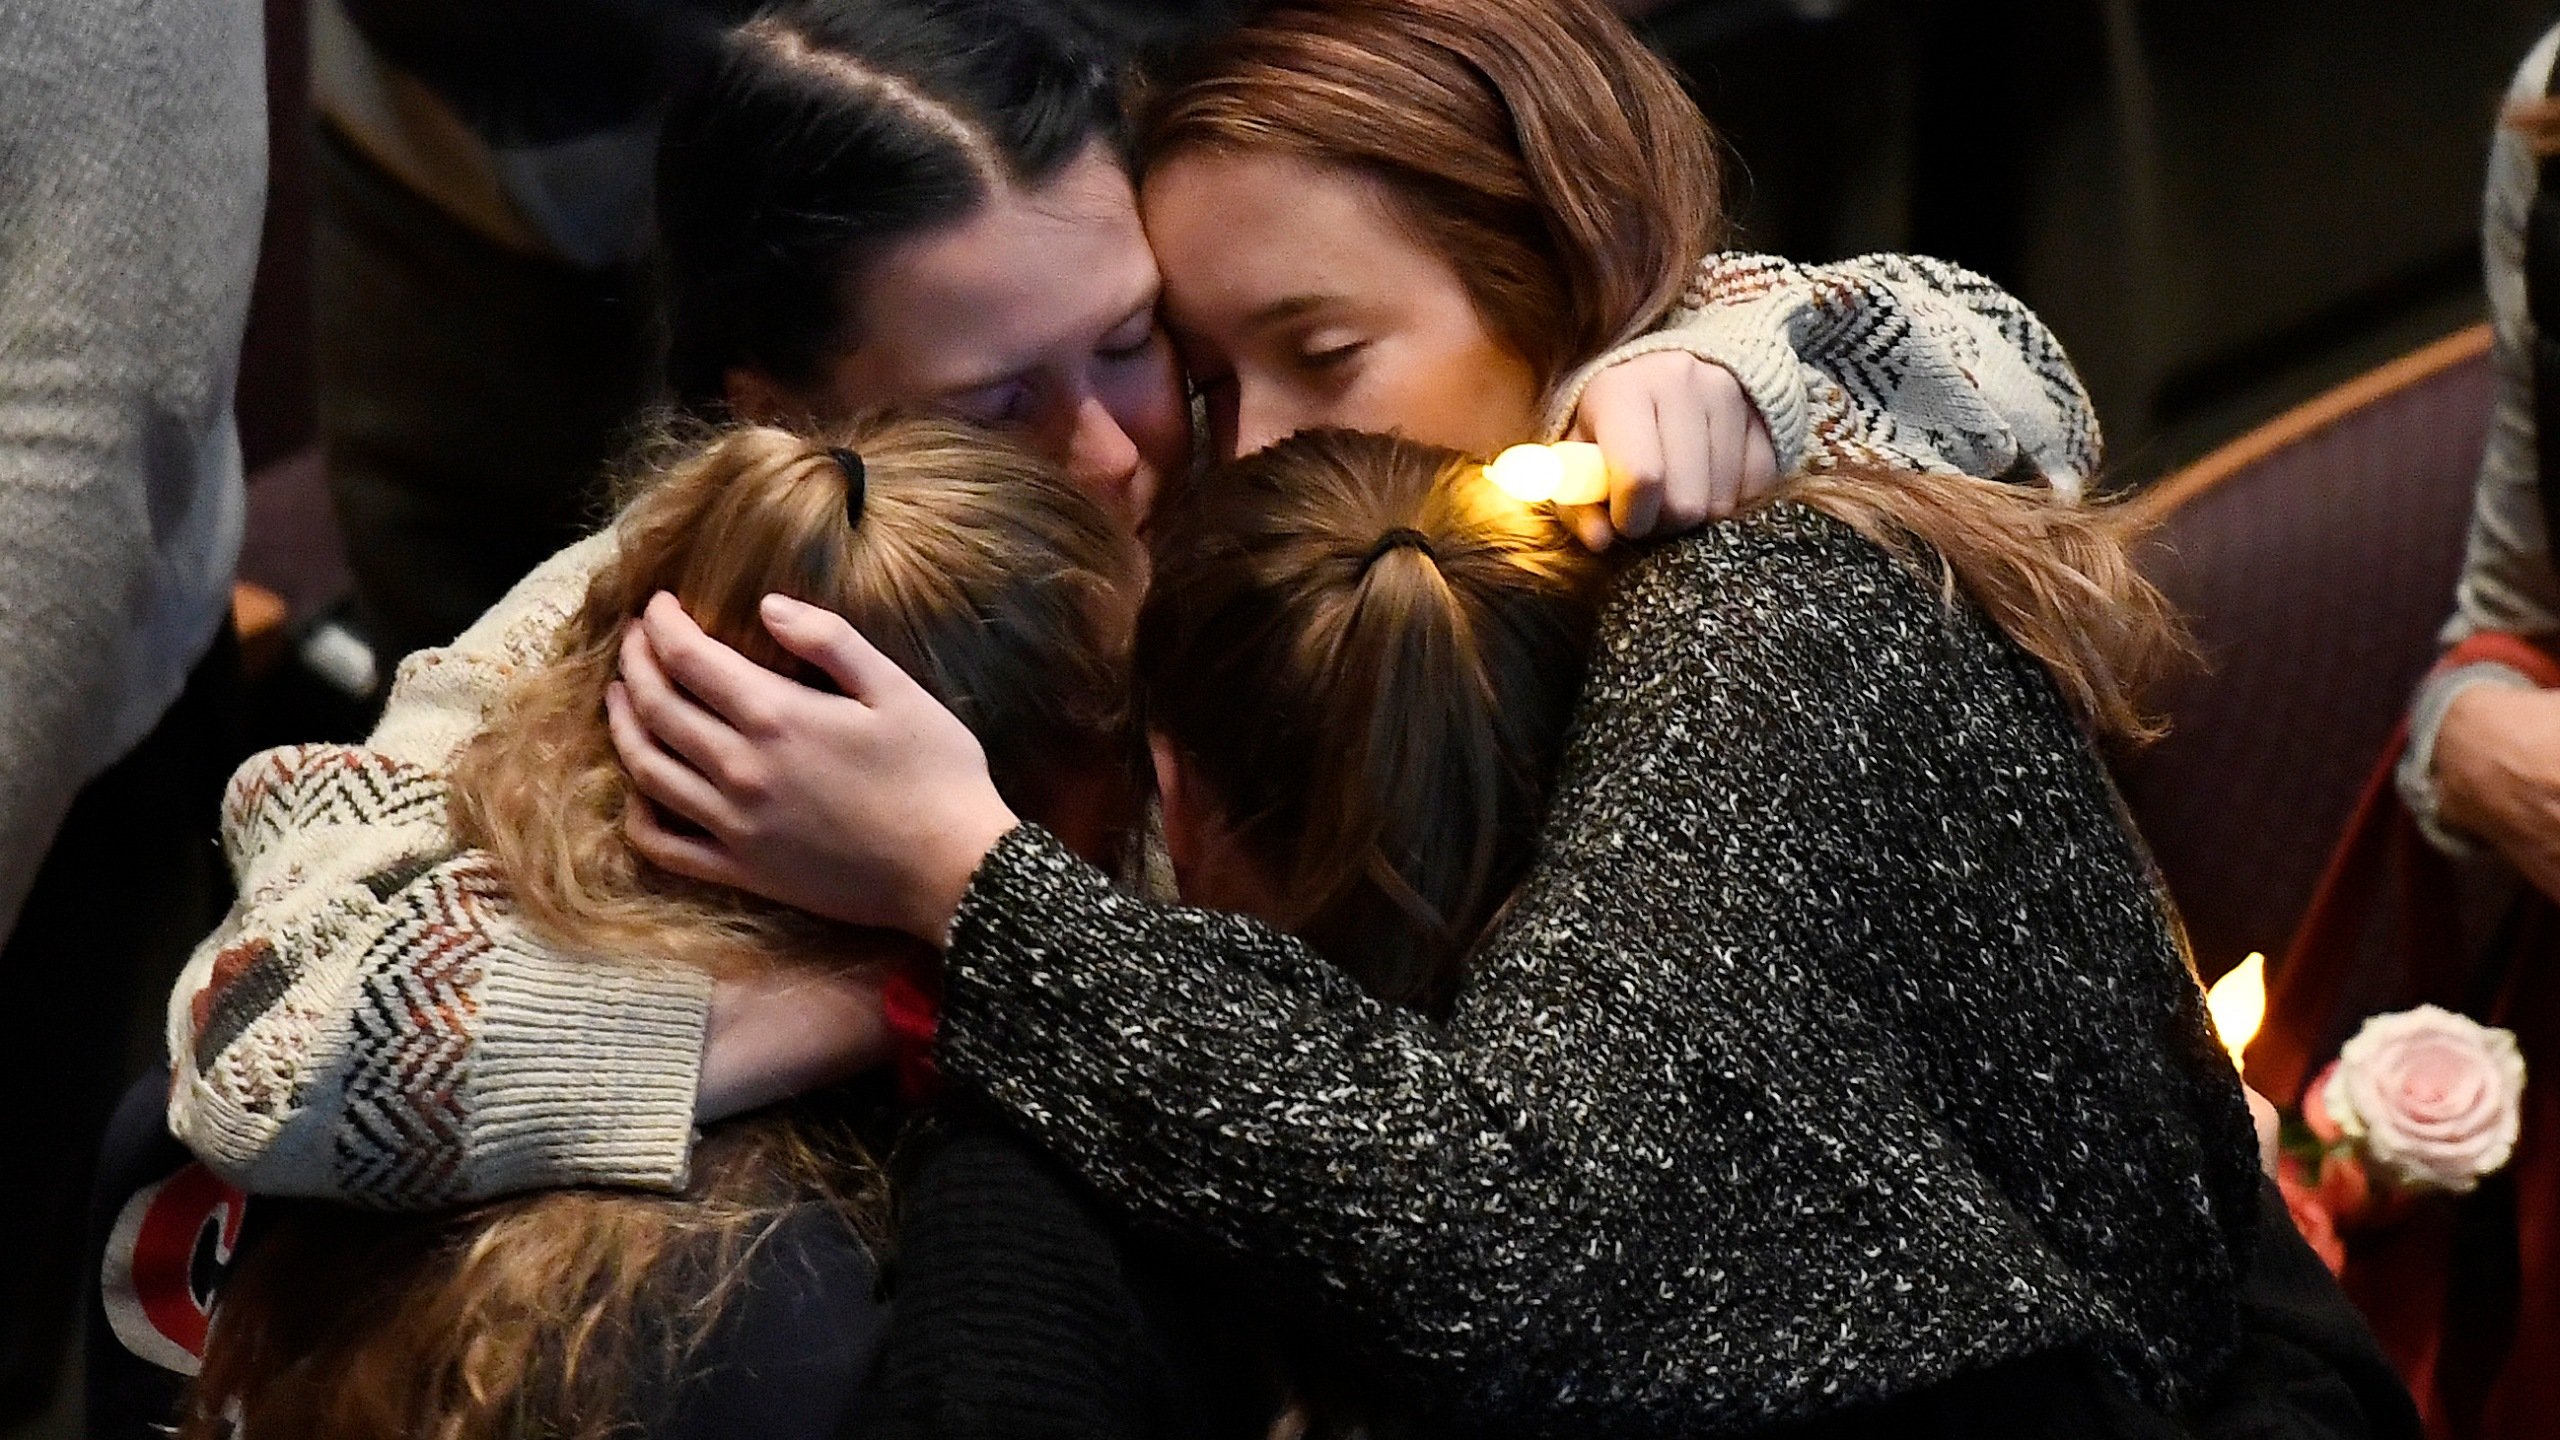 Mourners cry and comfort each other during a vigil for the victims of the mass shooting at the Thousand Oaks Civic Arts Plaza on Nov. 8, 2018, in Thousand Oaks. (Credit: Kevork Djansezian/Getty Images)